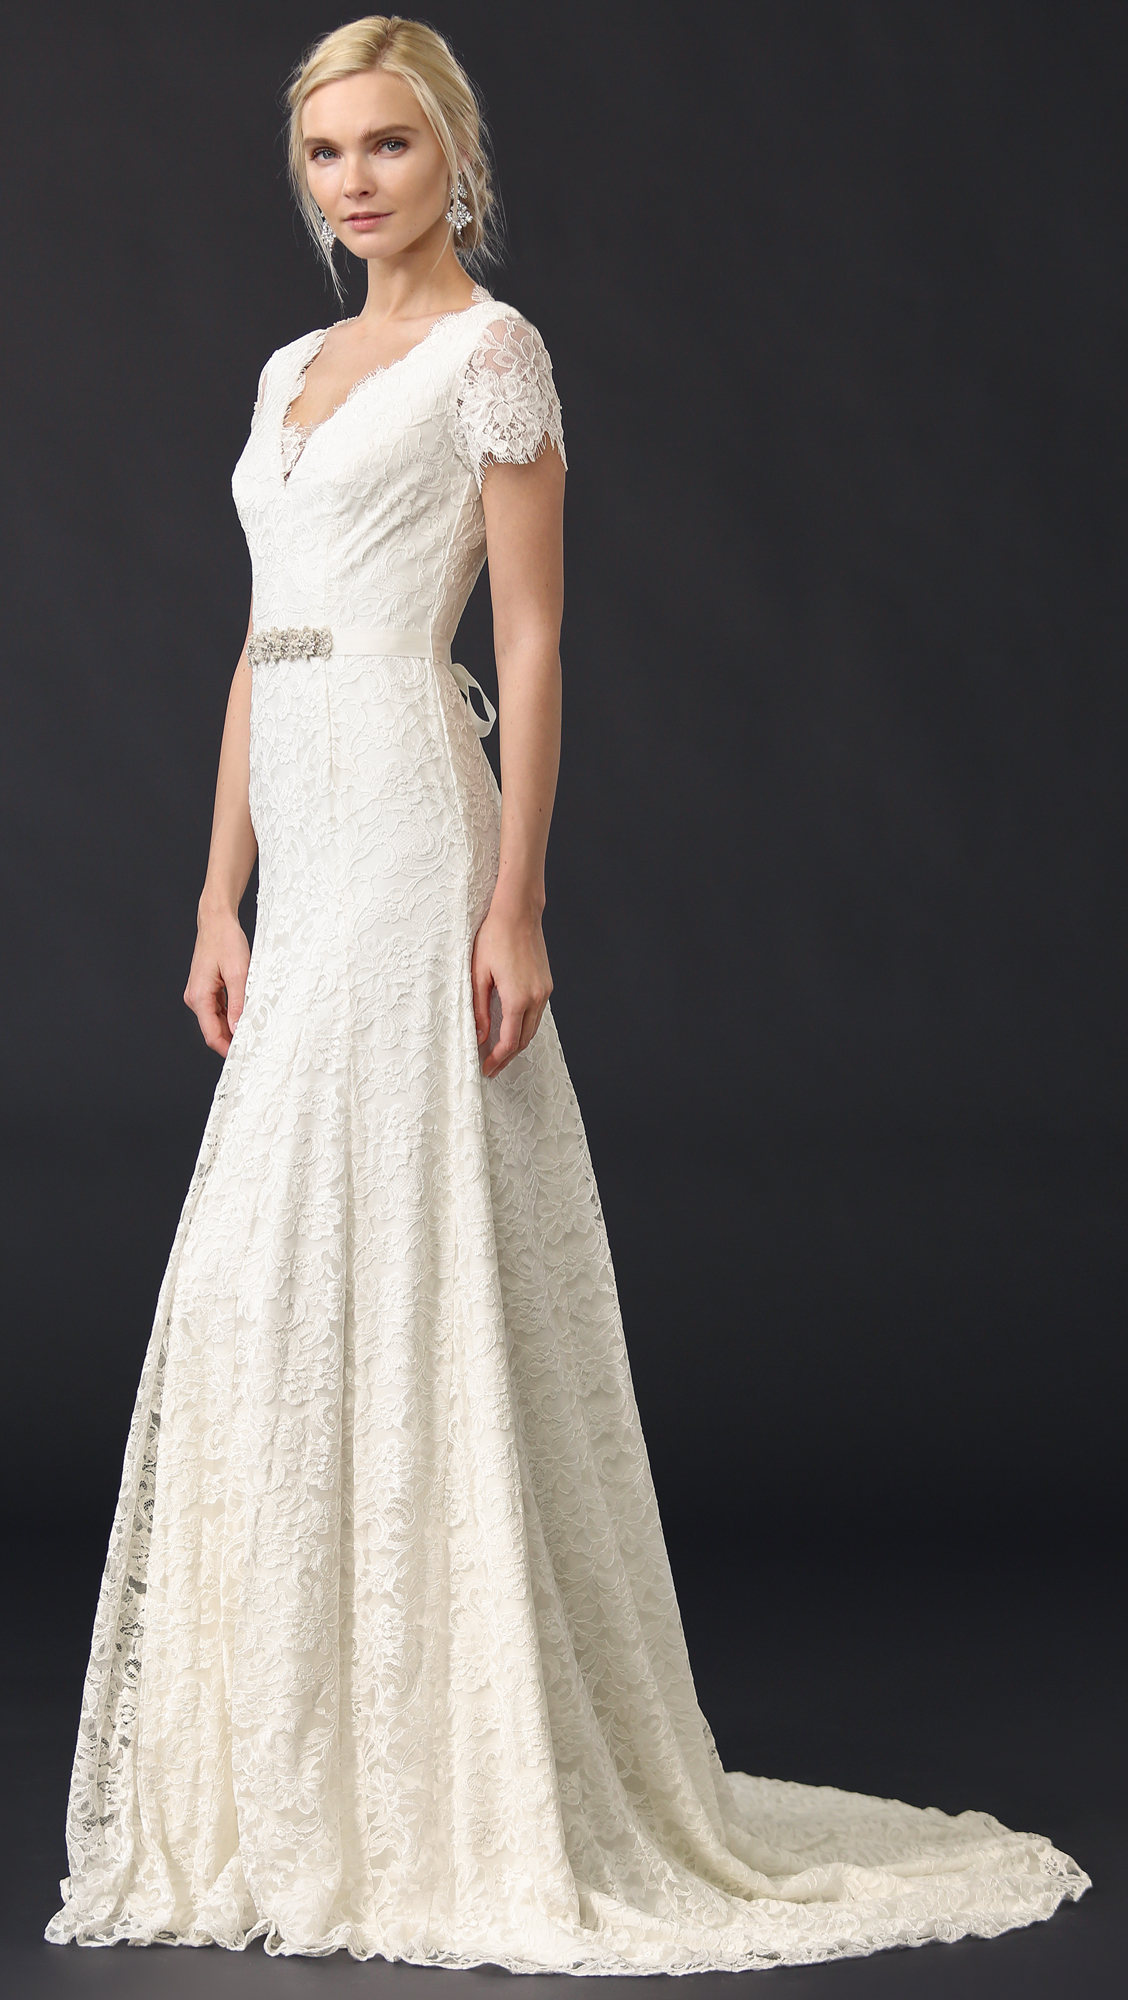 Theia Louise Gown with Belt | SHOPBOP SAVE UP TO 25% Use Code: EVENT18